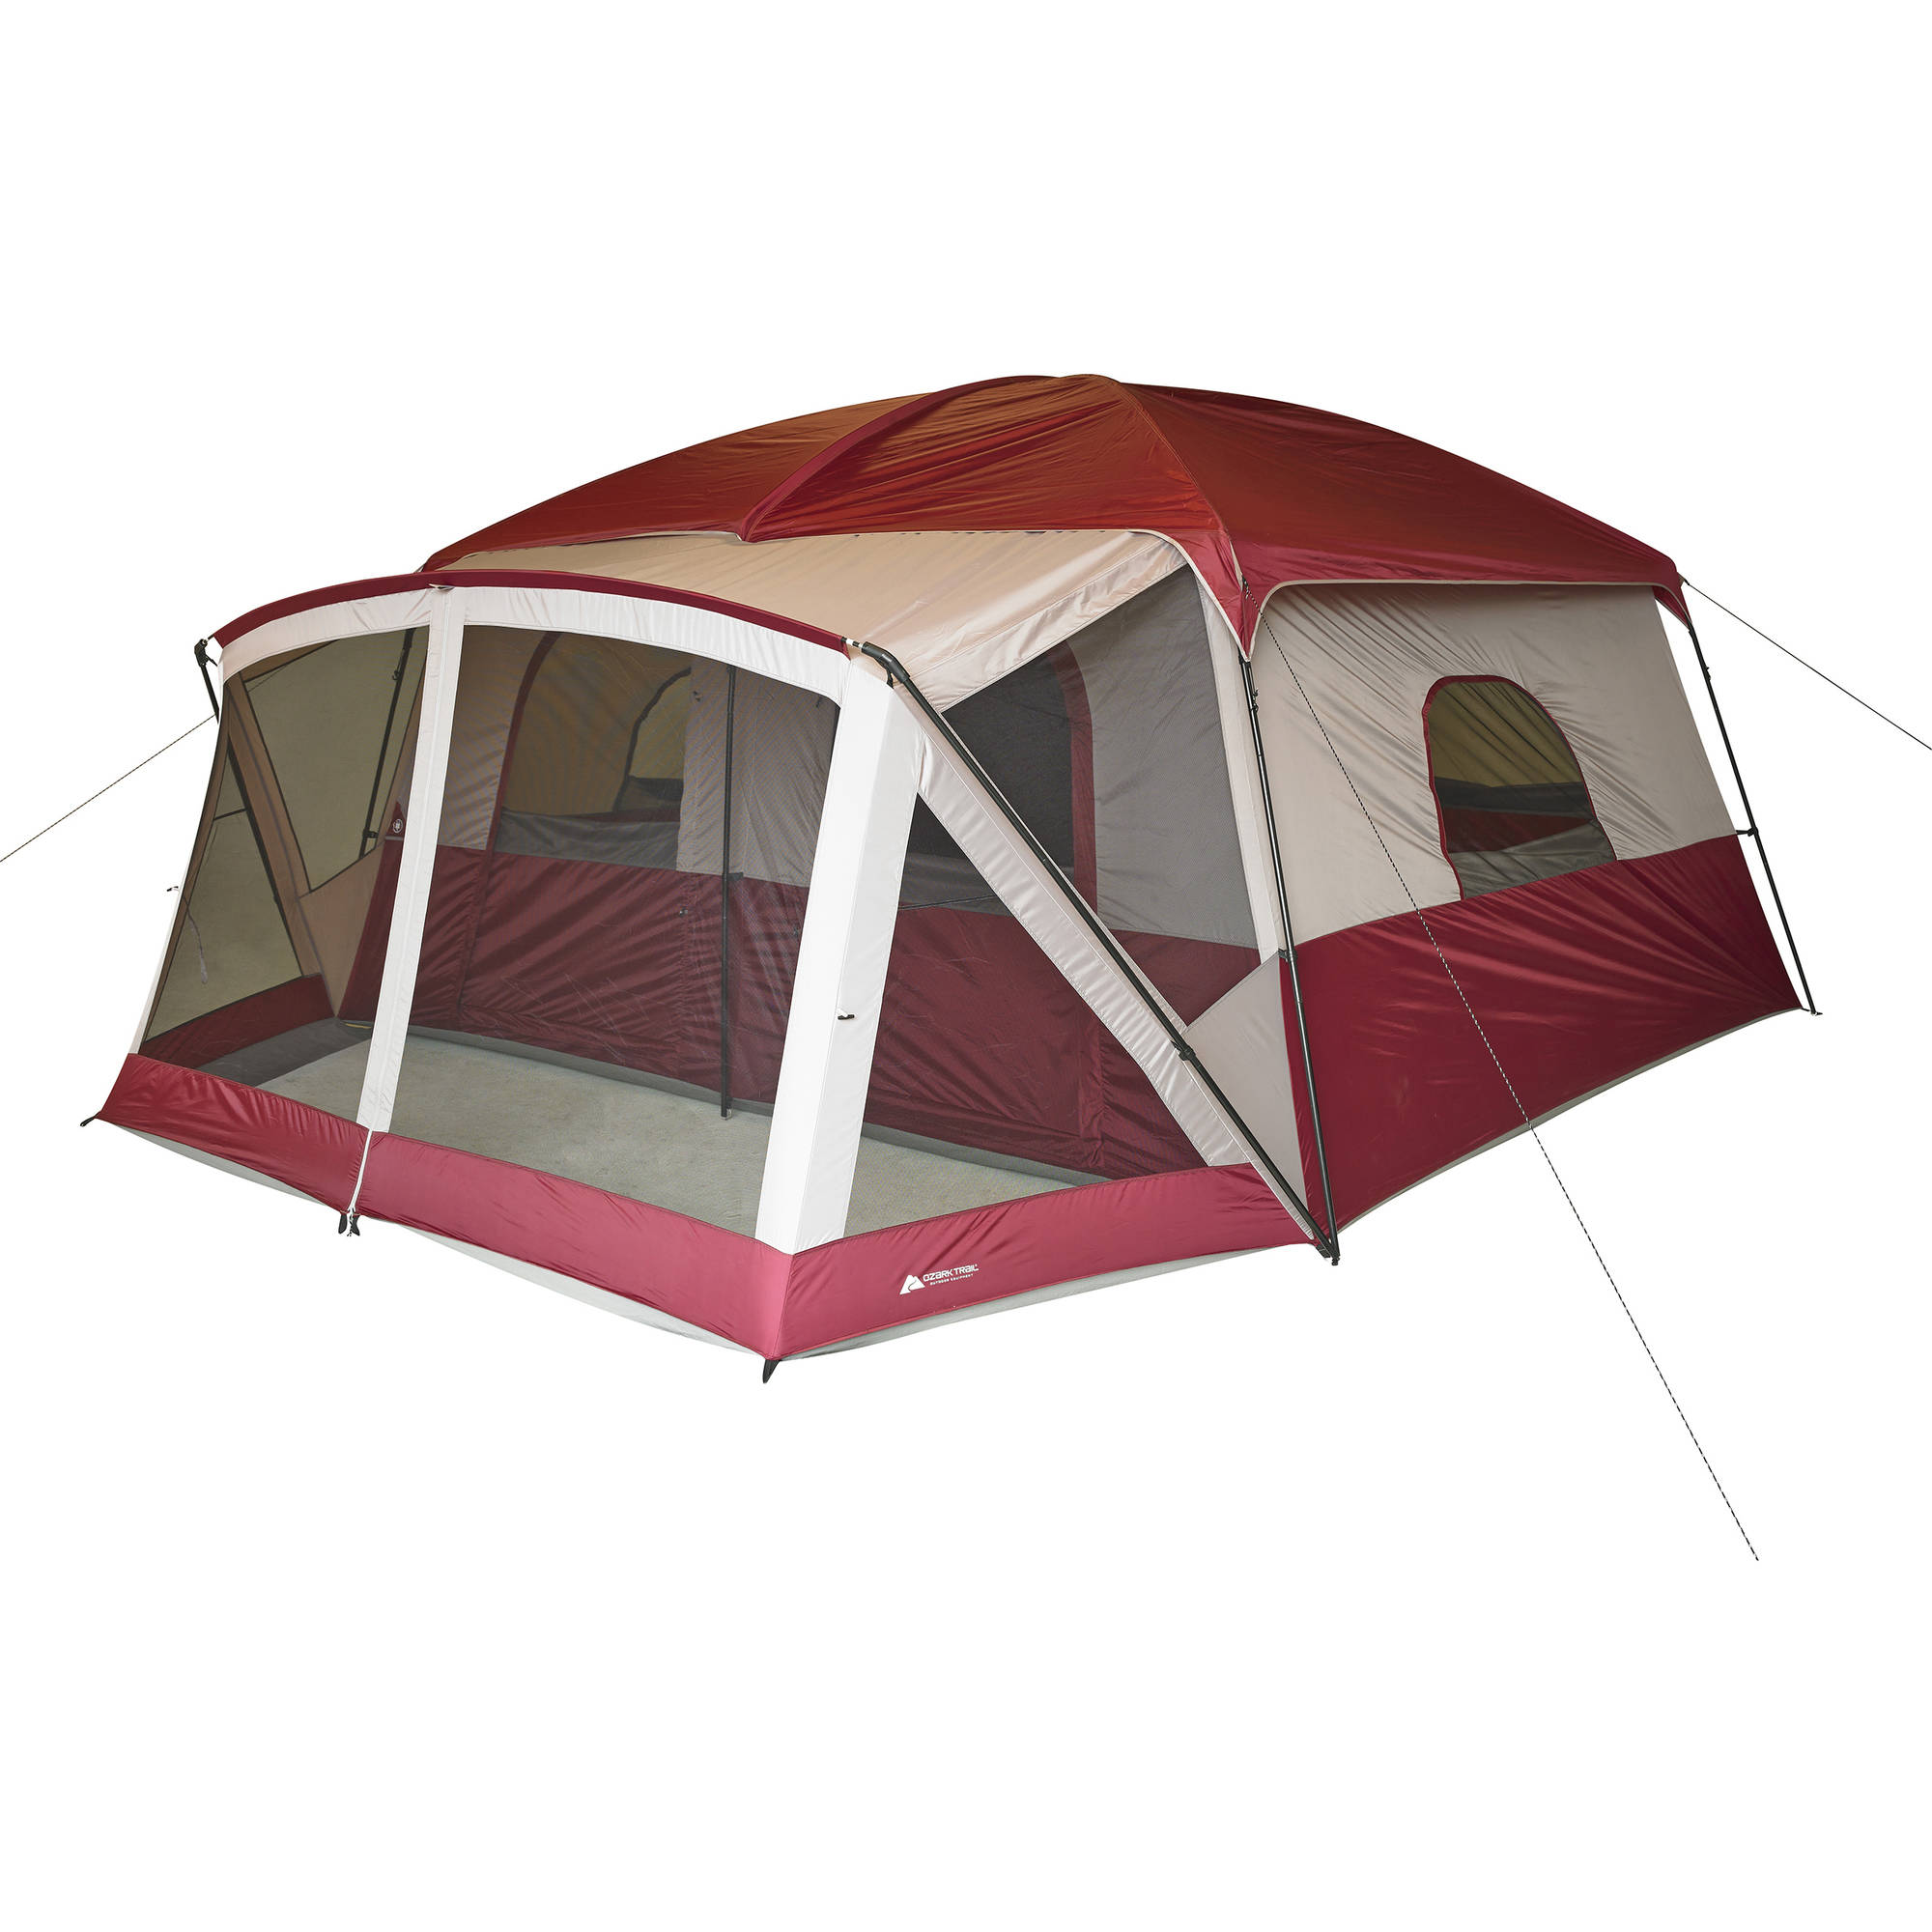 sc 1 st  Walmart & Ozark Trail 12-Person Cabin Tent with Screen Porch - Walmart.com